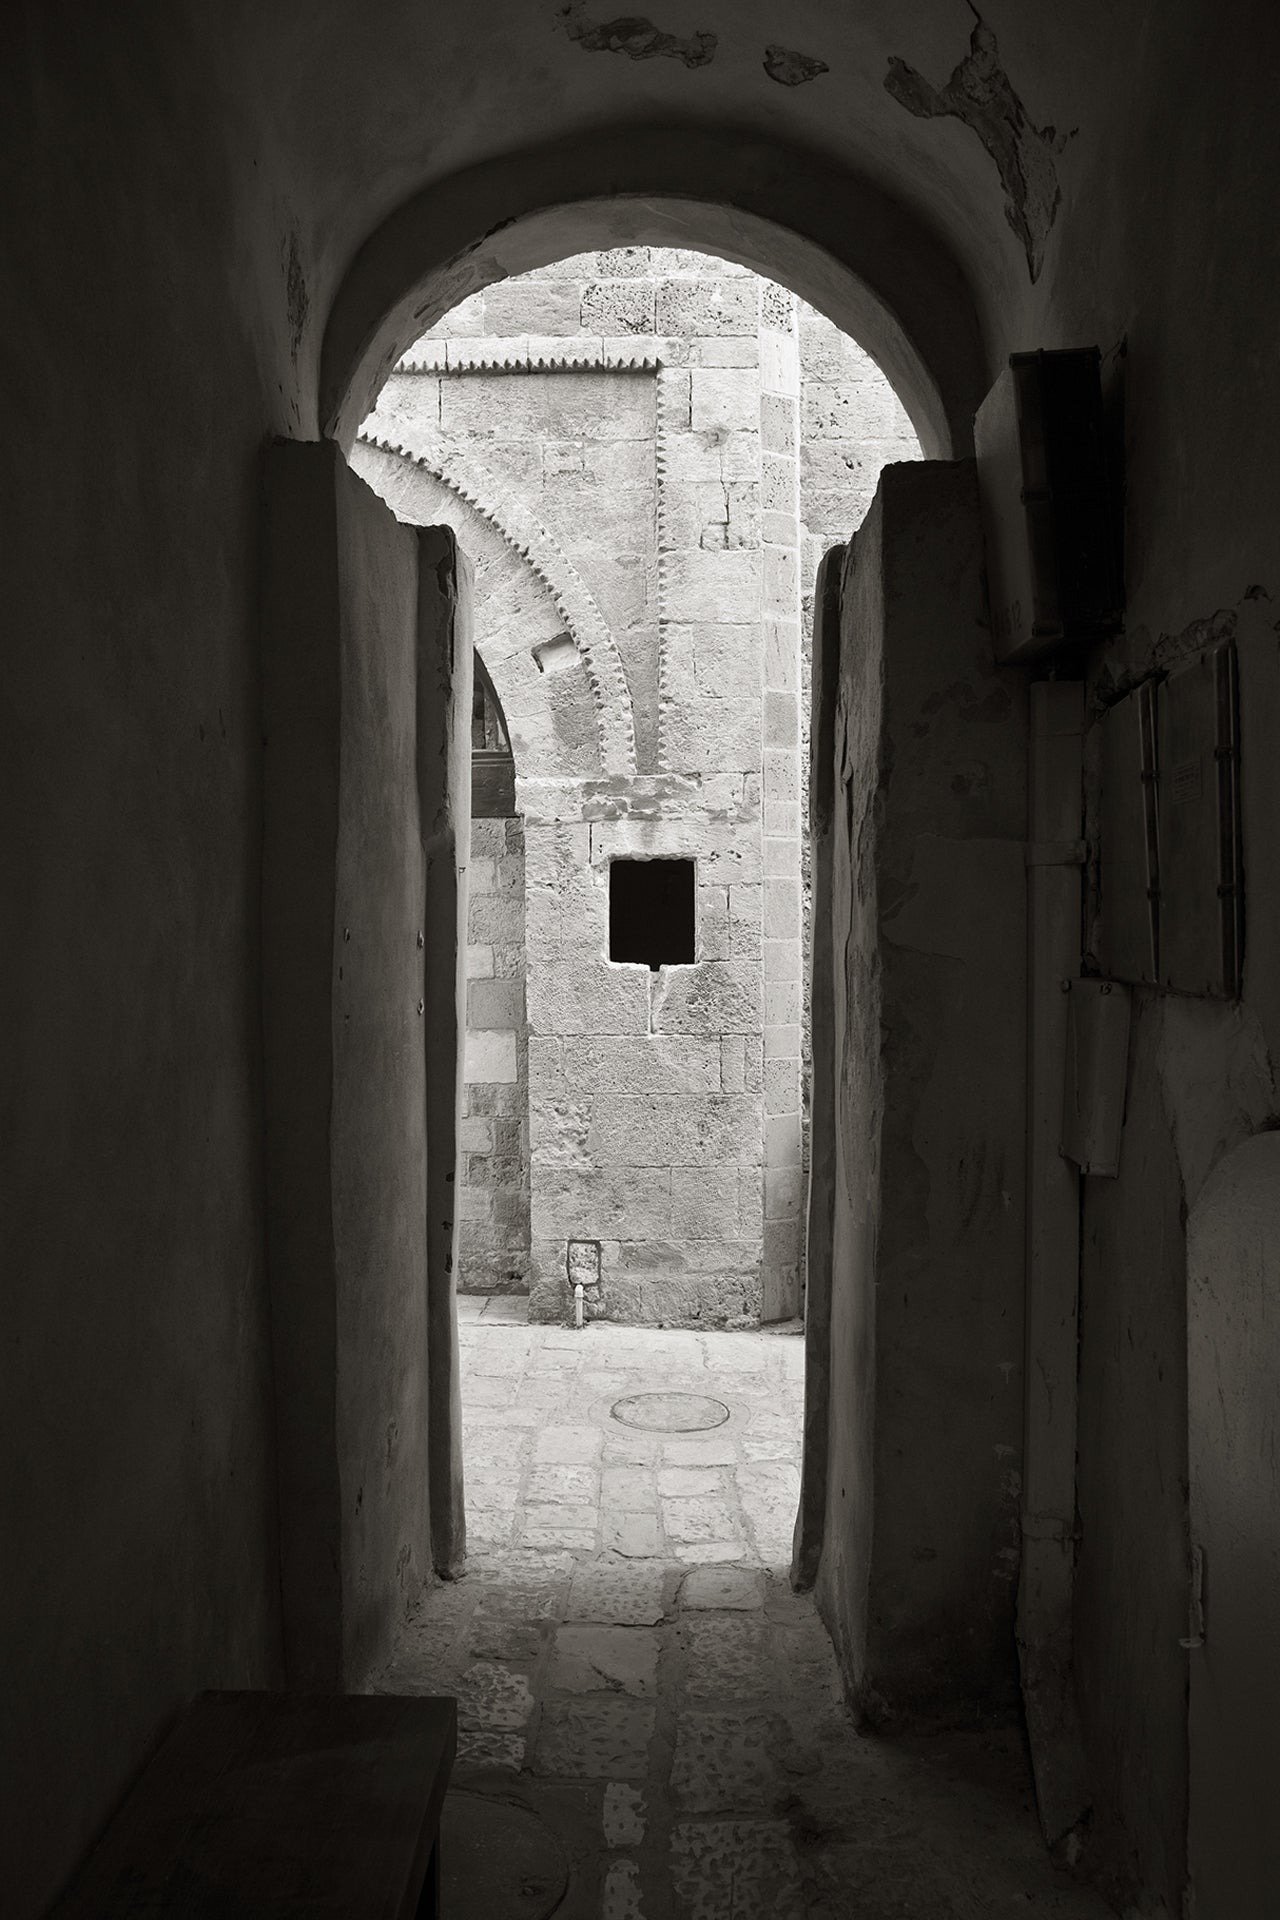 Jaffa in black & white - photography